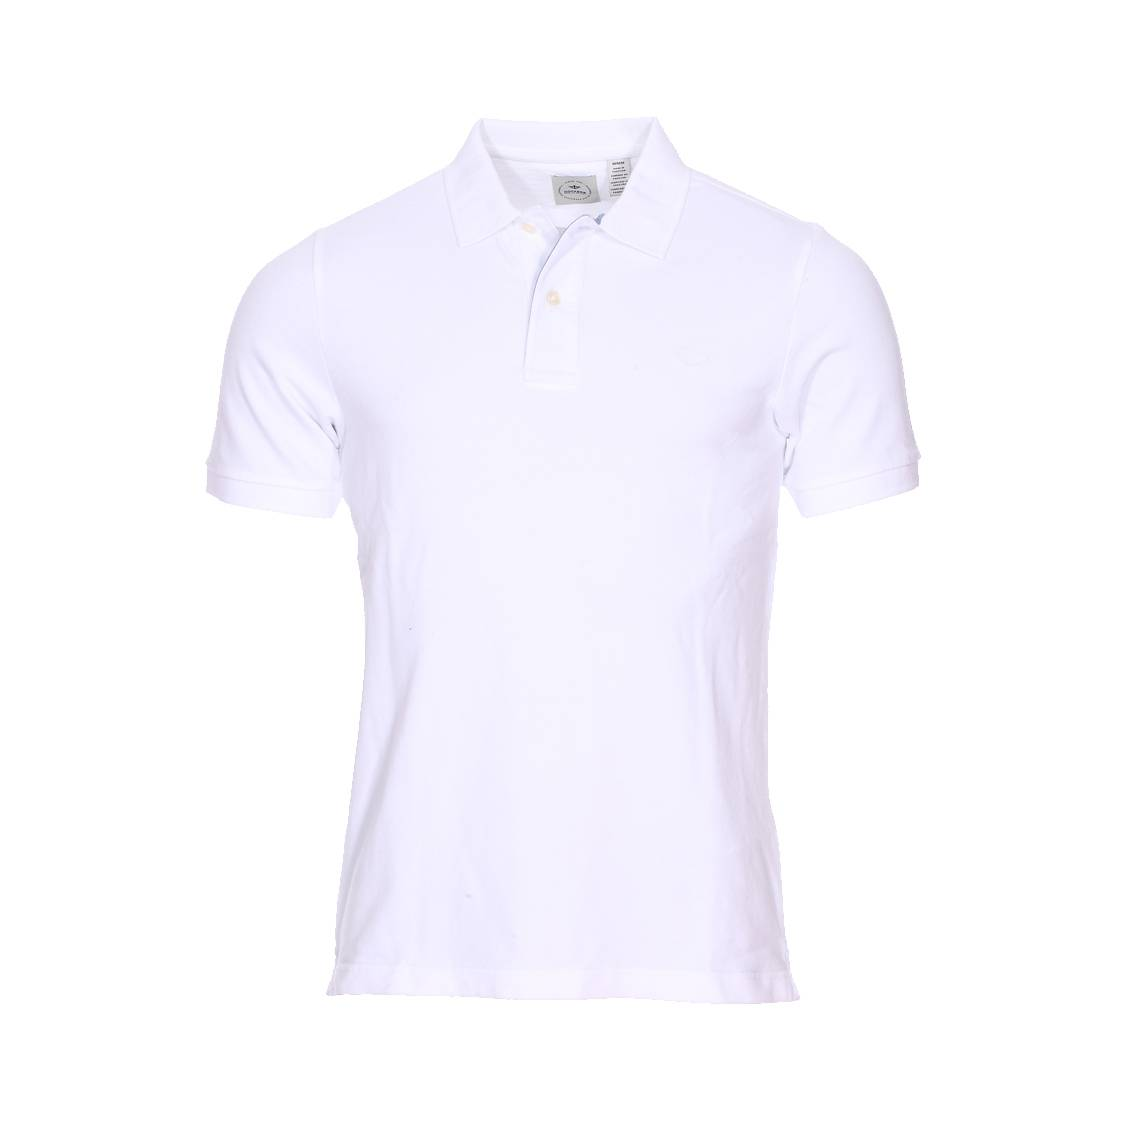 Polo <strong>dockers</strong> en maille piquée blanche